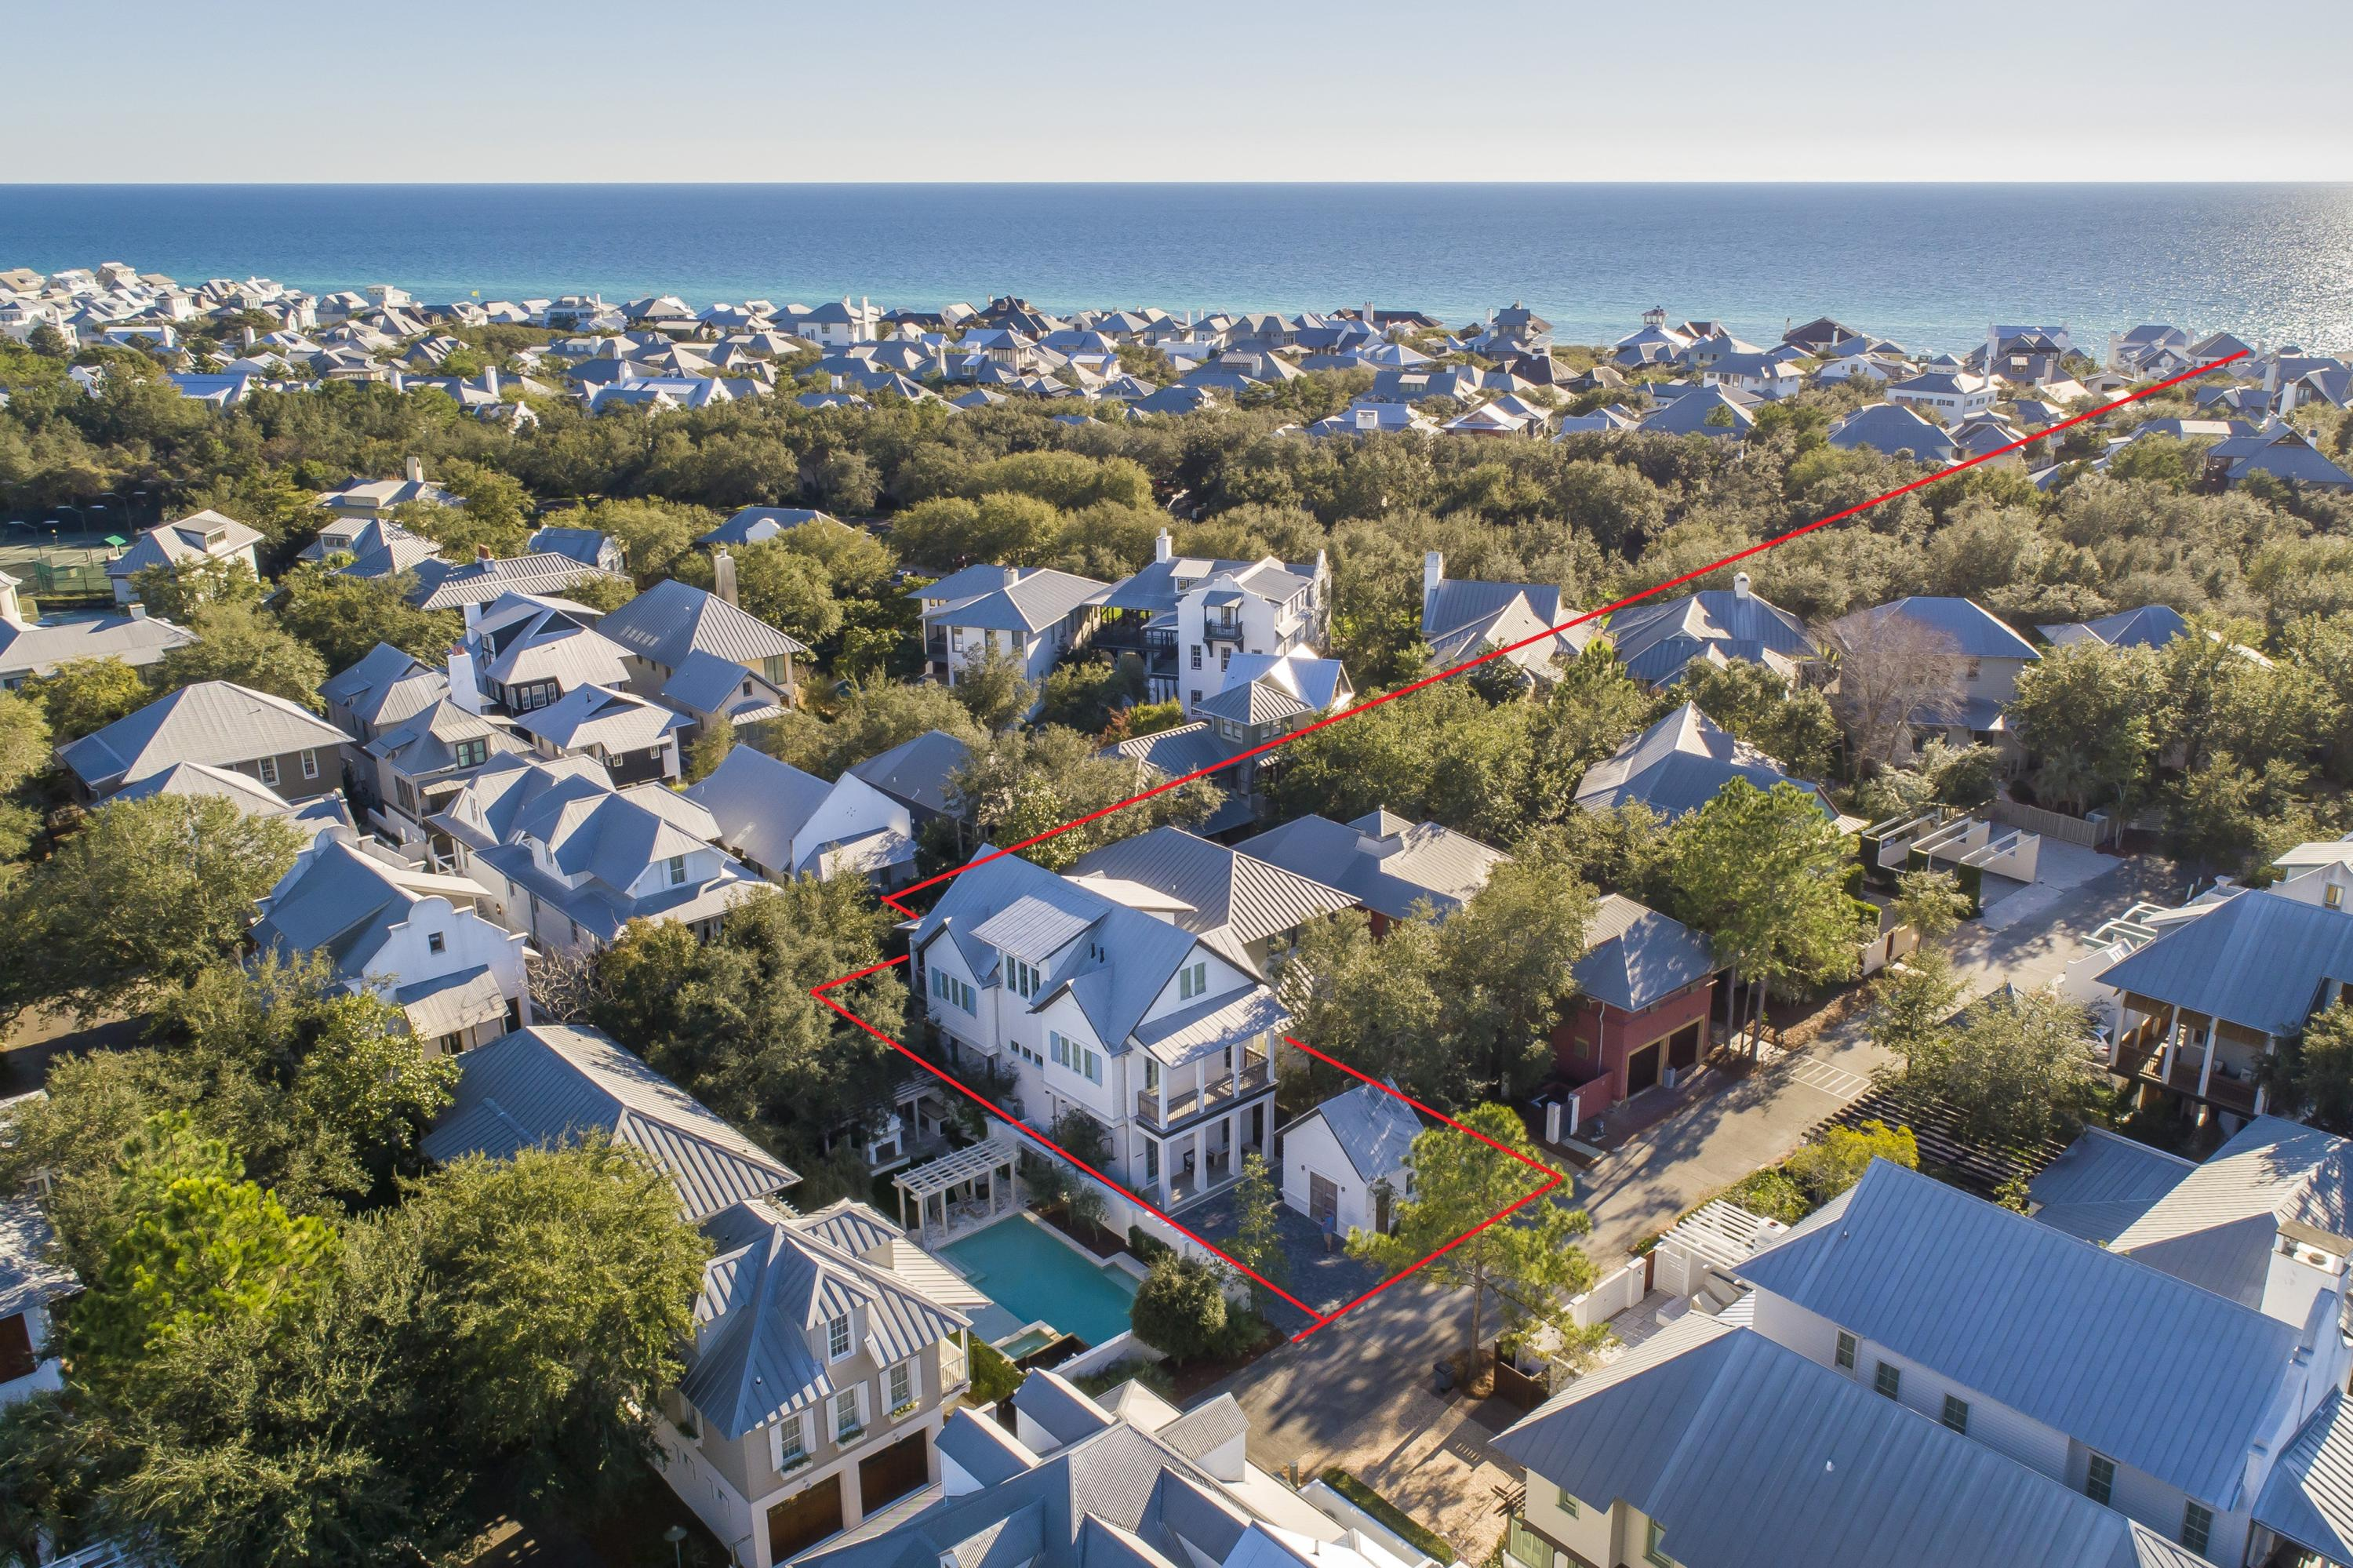 87 BOURNE Lane, Rosemary Beach, FL 32461